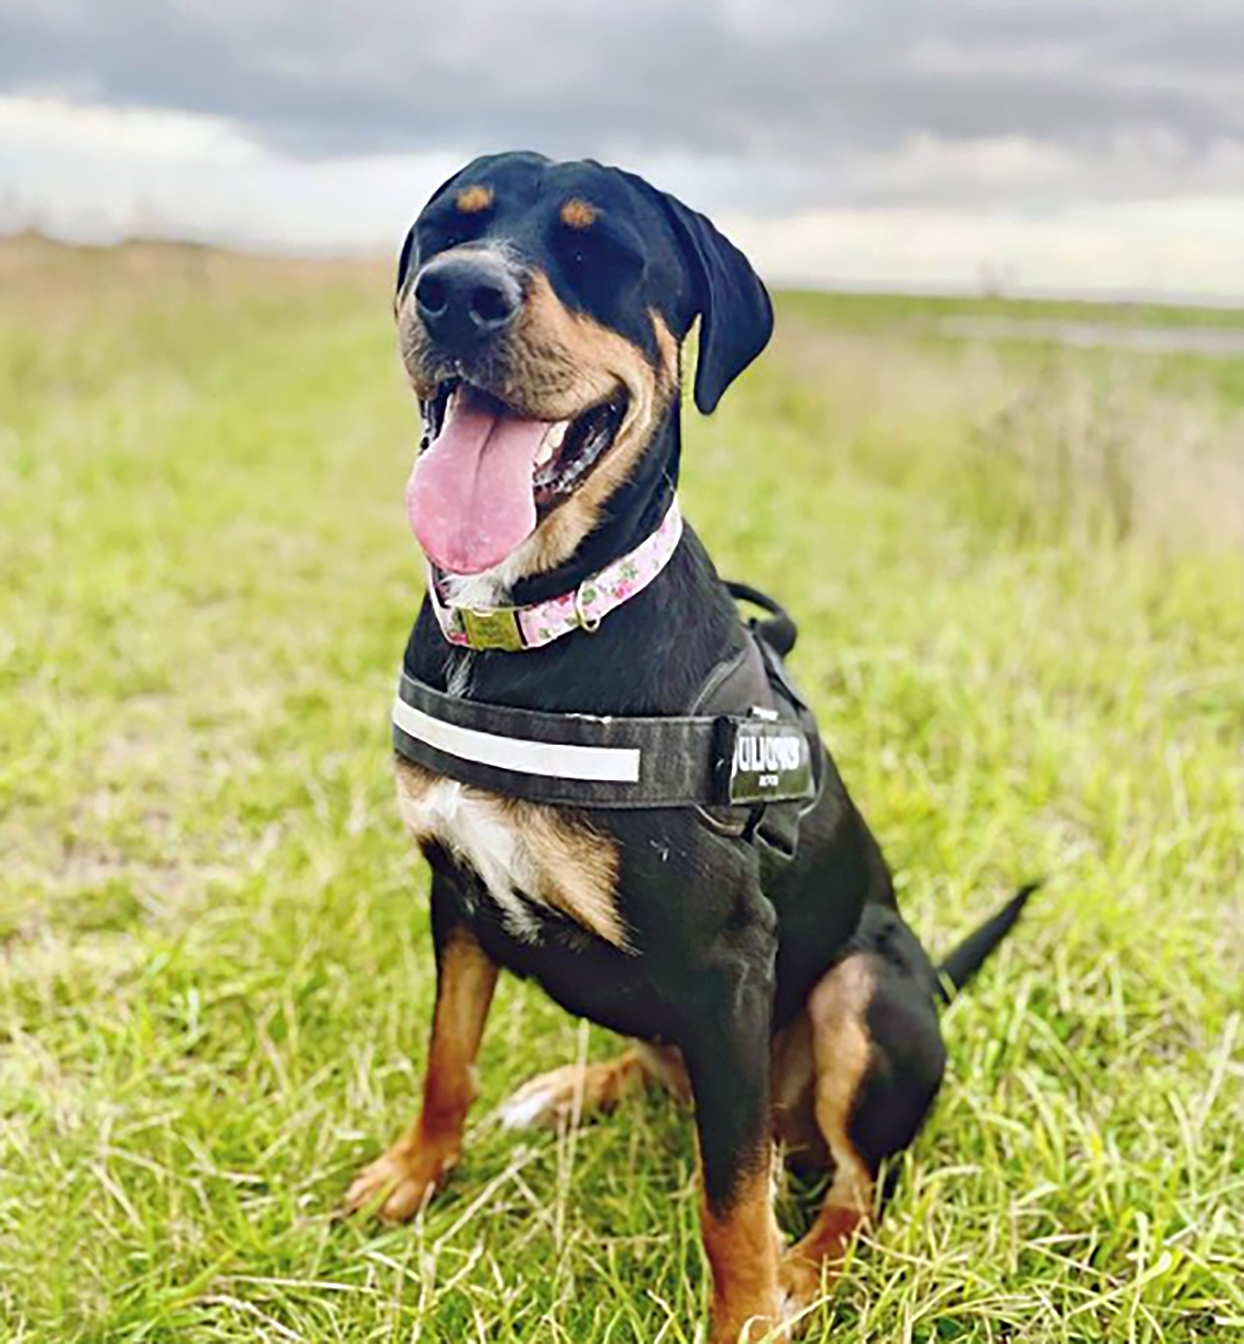 rottweiler lab mix with rottweiler markings and labrador body